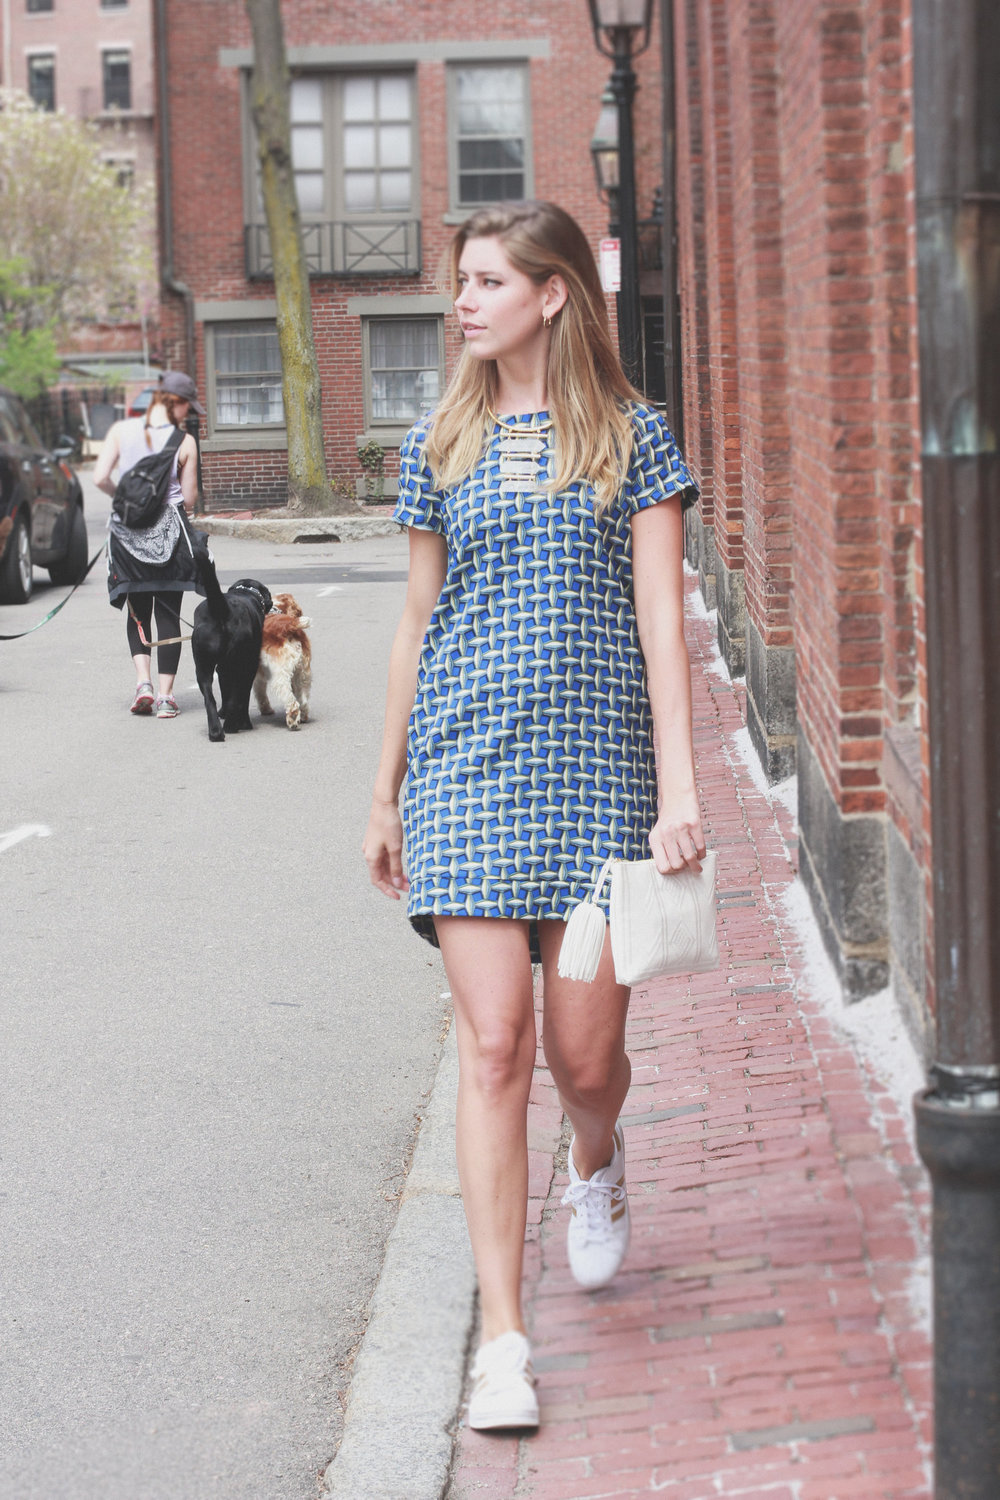 street+style+outfit+dress+with+sneakers.jpg